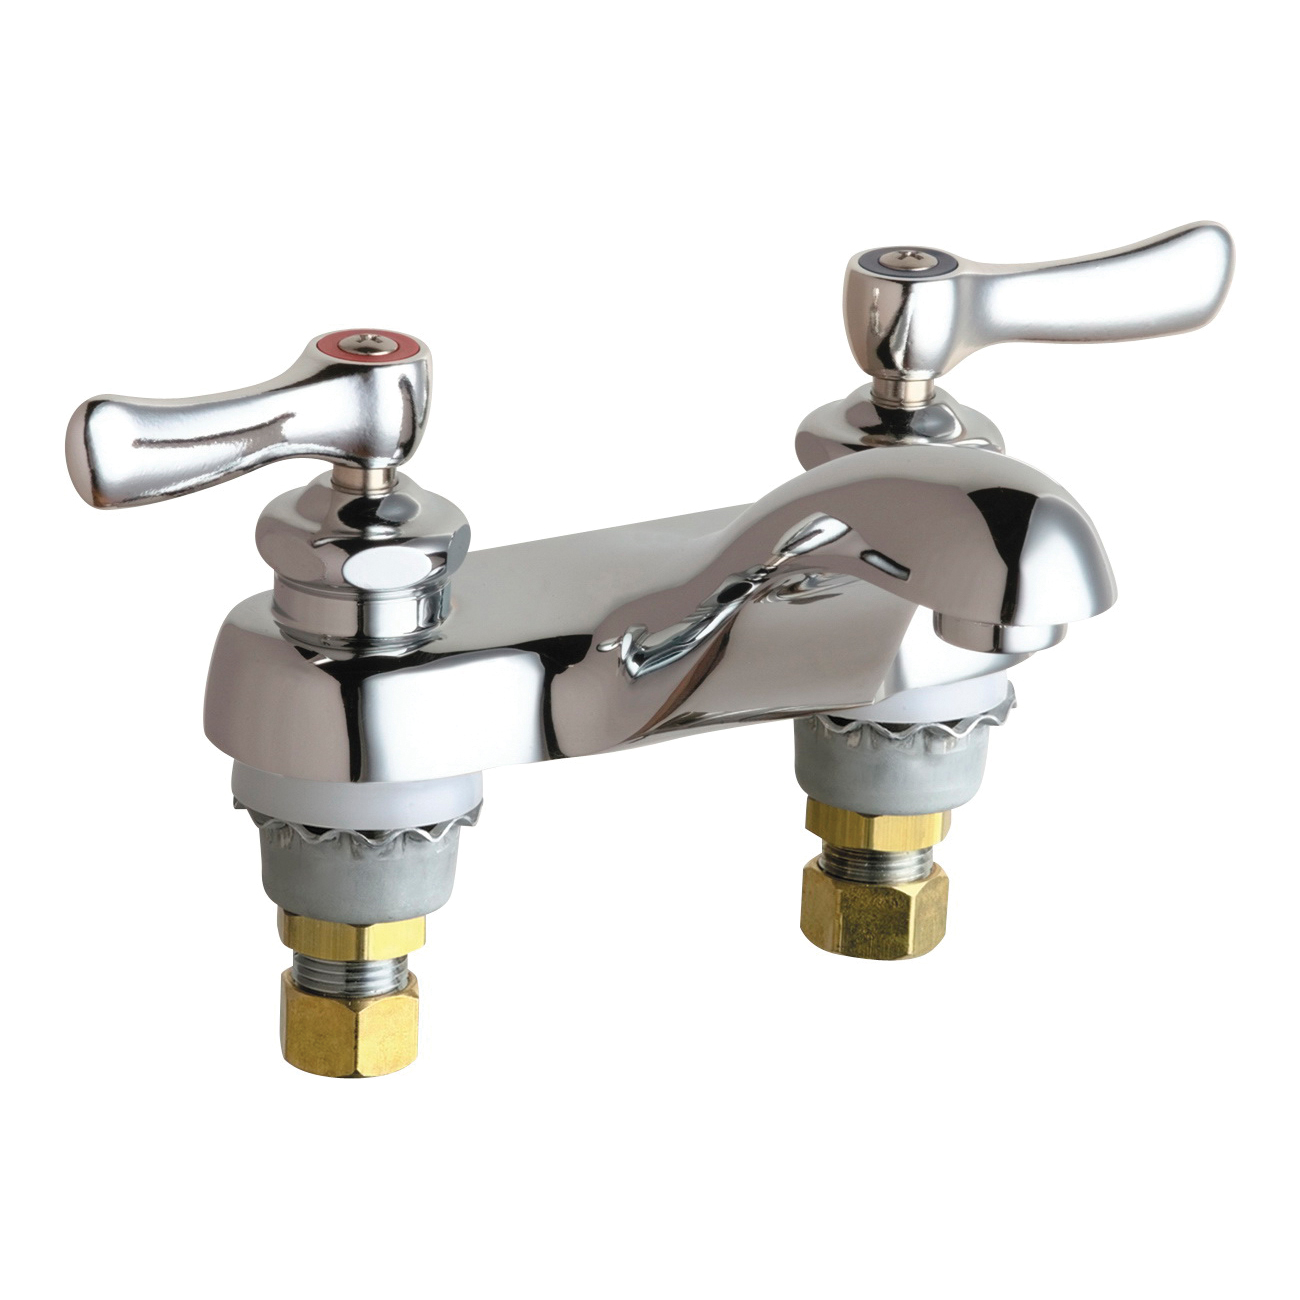 Chicago Faucet® 802-ABCP Lavatory Sink Faucet, Chrome Plated, 2 Handles, 2.2 gpm